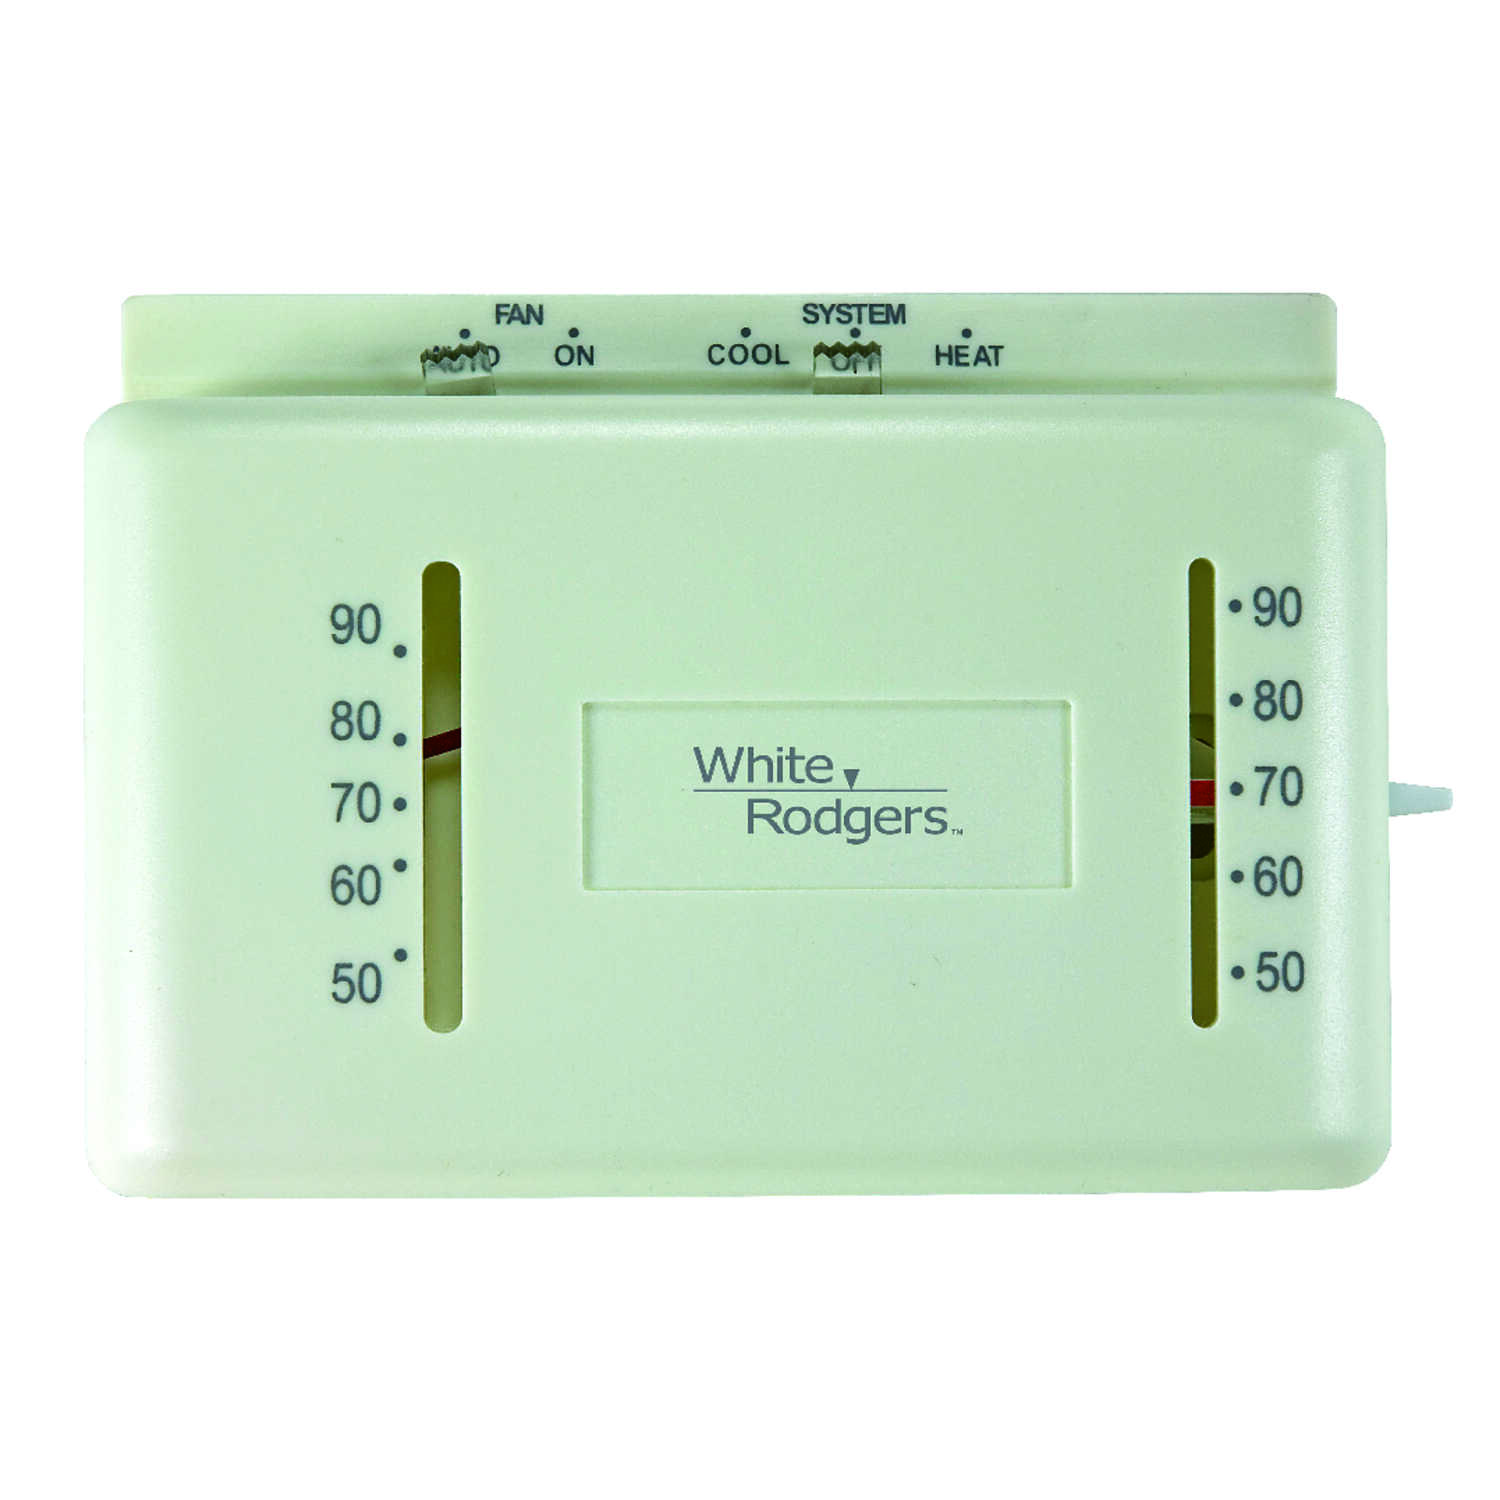 White Rodgers  Heating and Cooling  Lever  Mechanical Thermostat